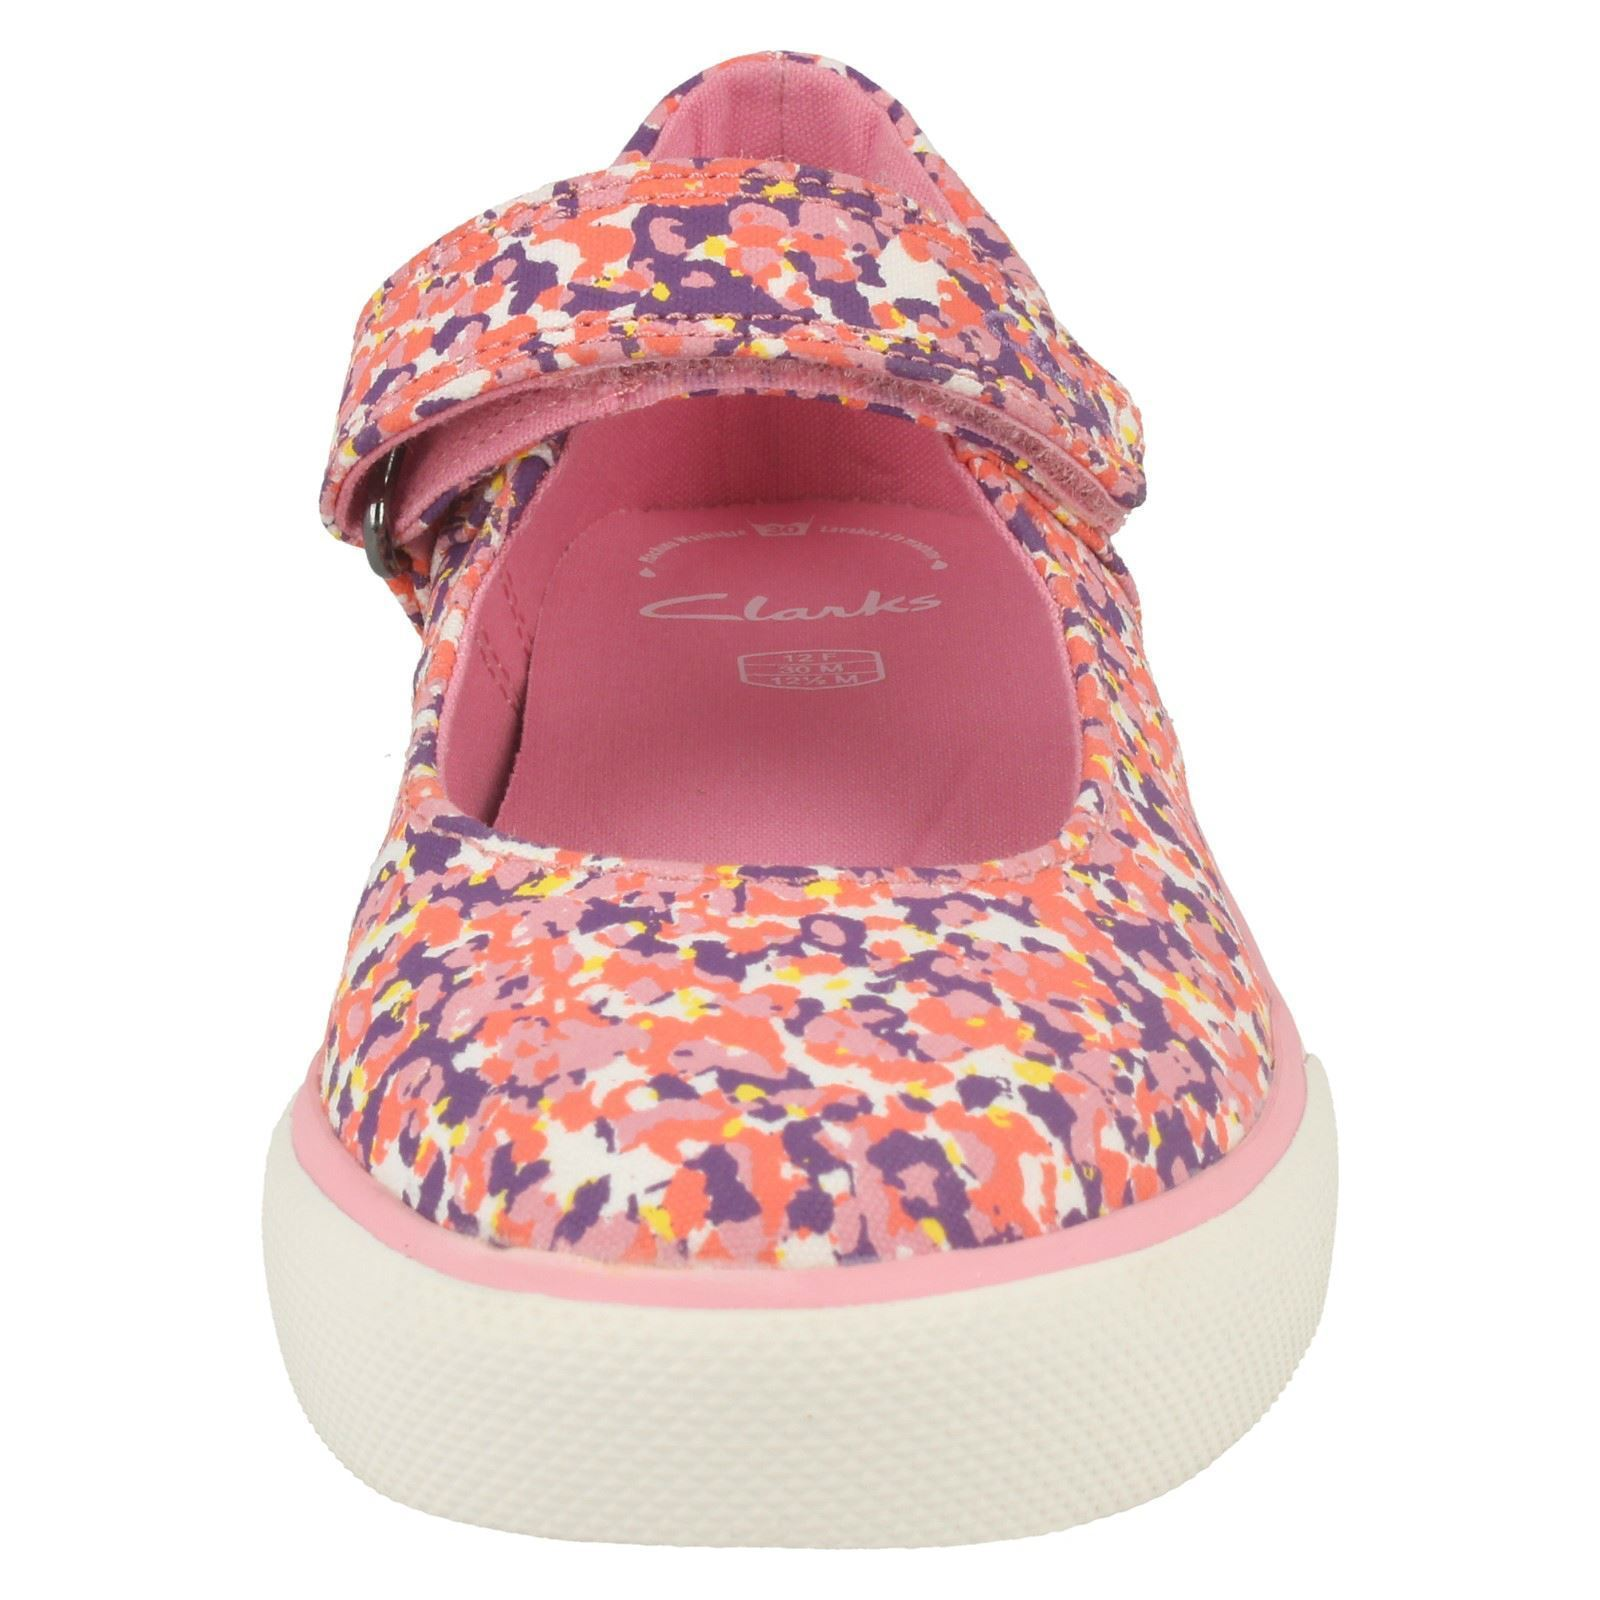 Girls Clarks Canvas Shoes Brill Gem